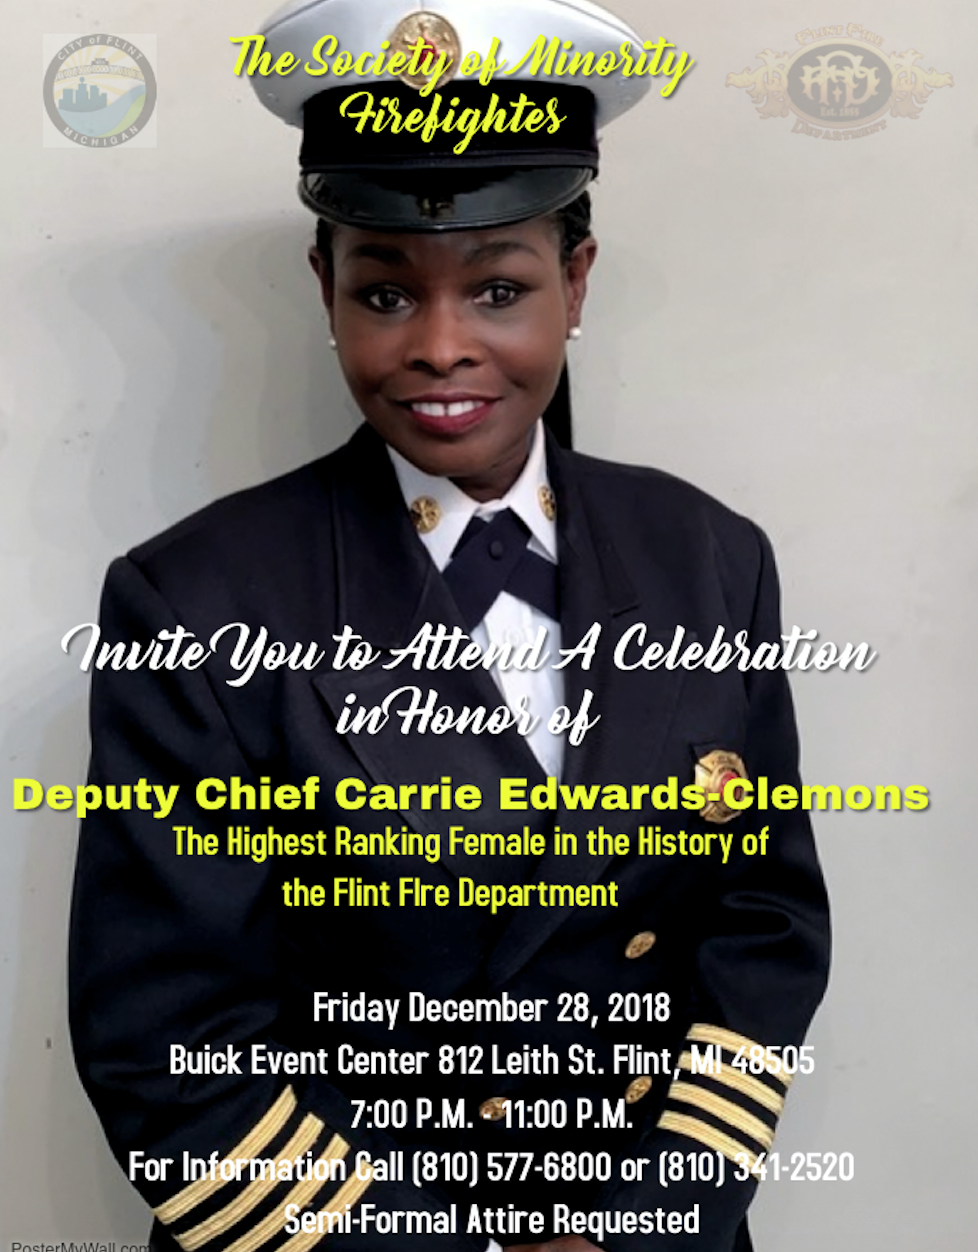 Celebration in Honor of Deputy Chief Carrie Edwards-Clemons